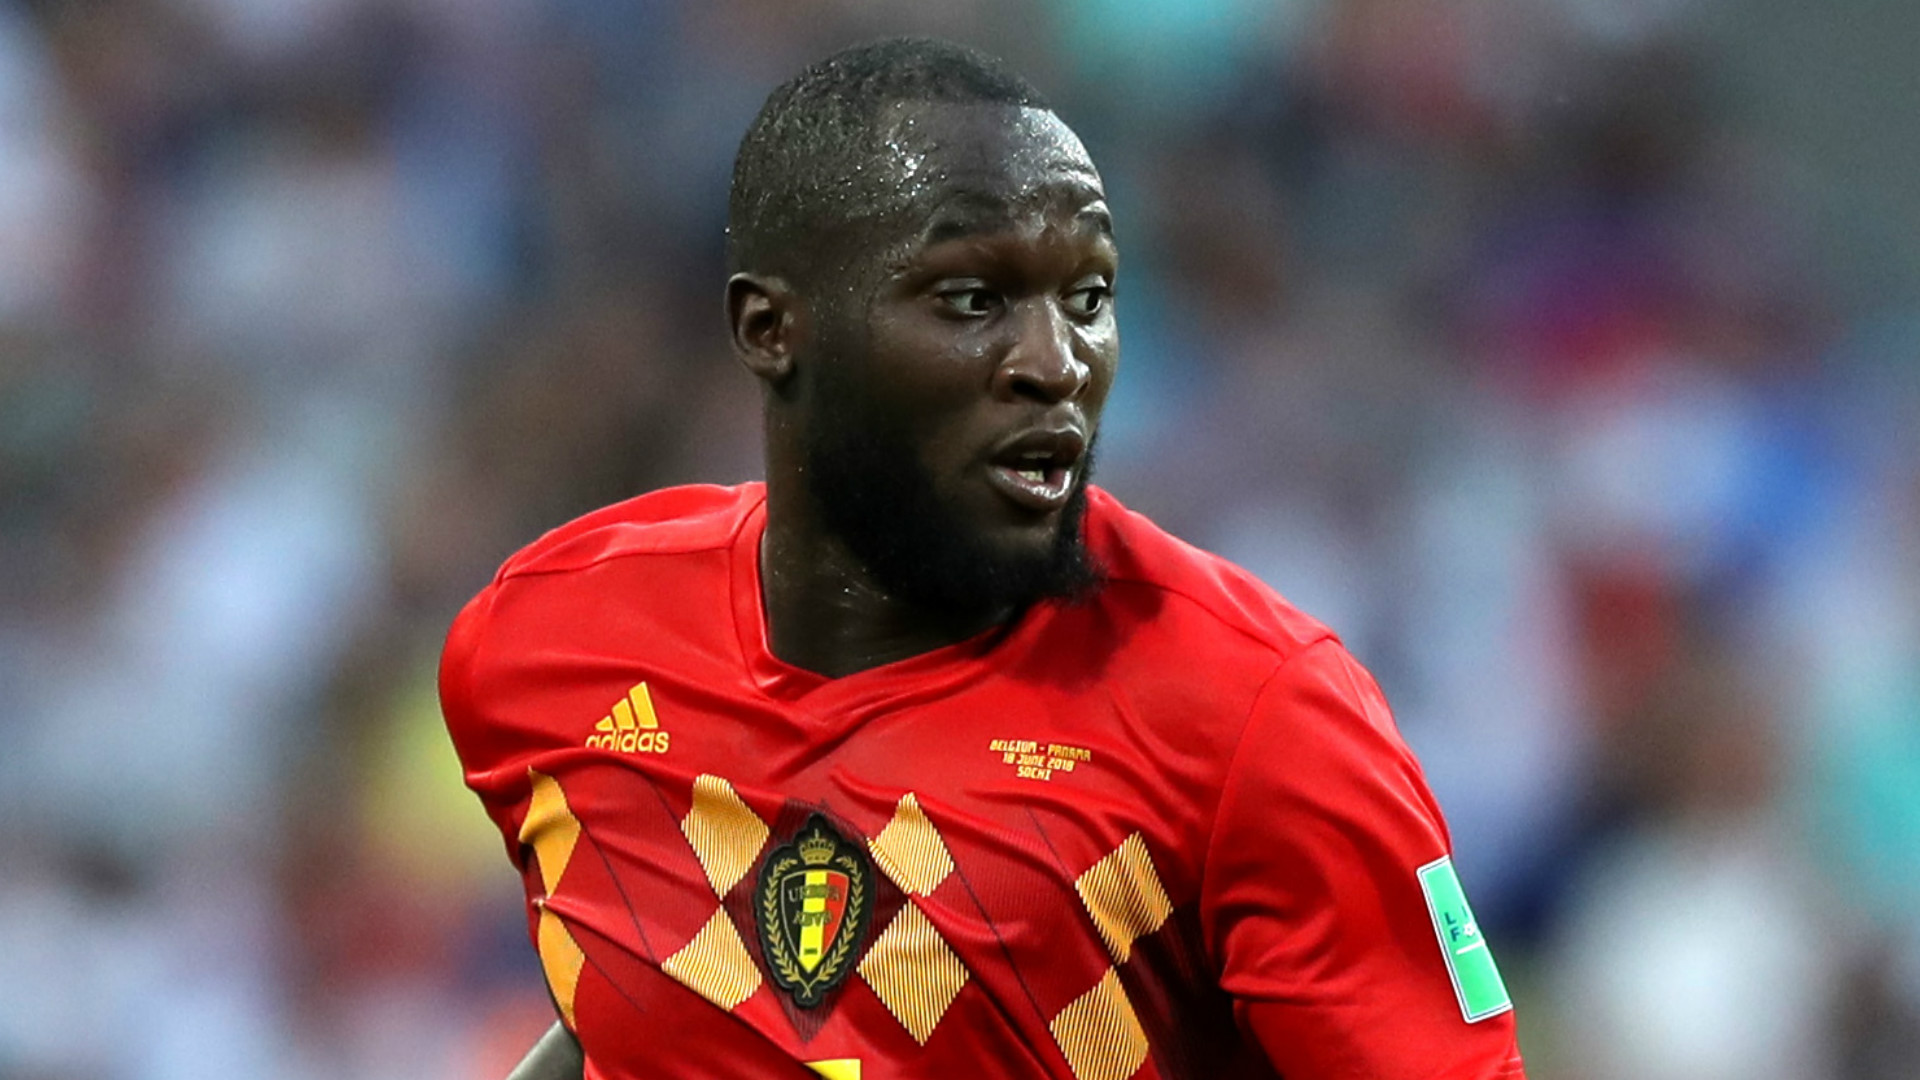 Twitter users praise Lukaku for assisting winning Belgium goal